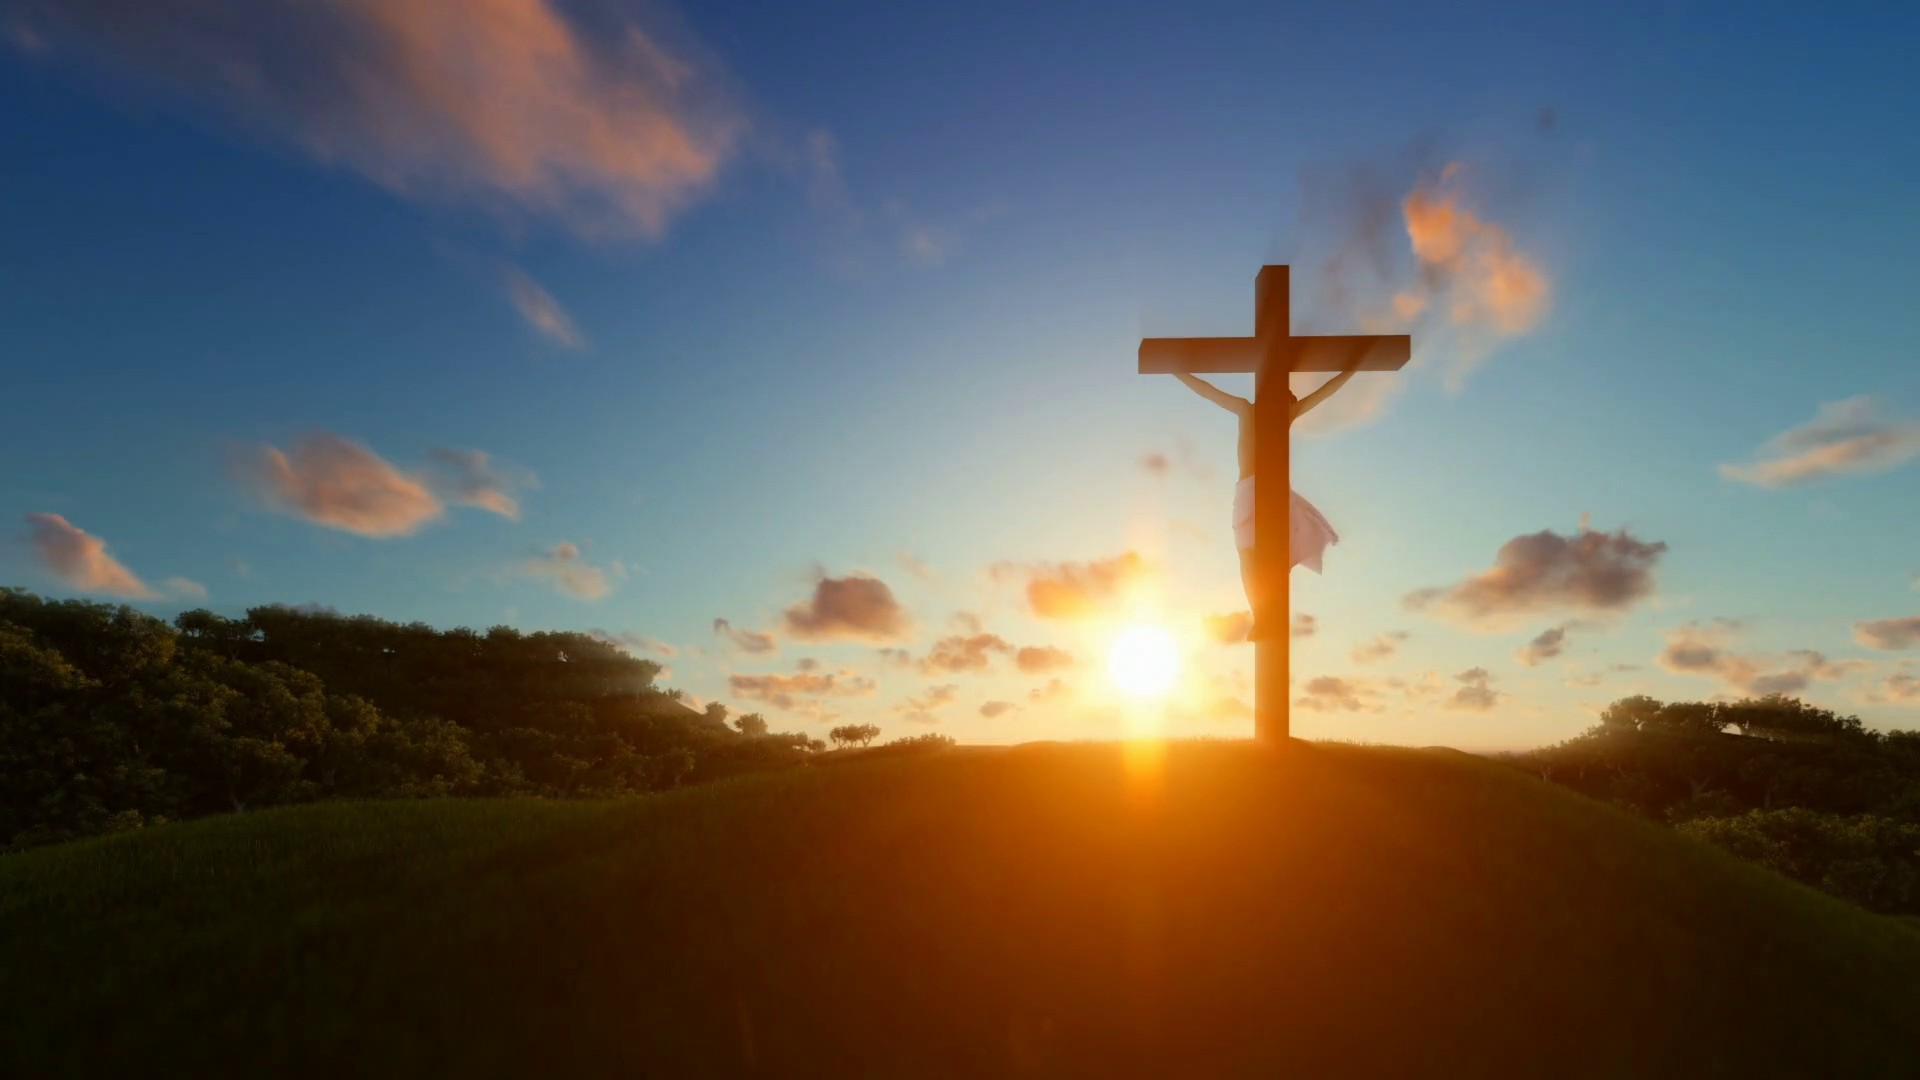 cross religious jesus background sunset religion christ sunrise concept risen pastor subscription library backgrounds cool desktop iphone wallpapertag warning kingdom